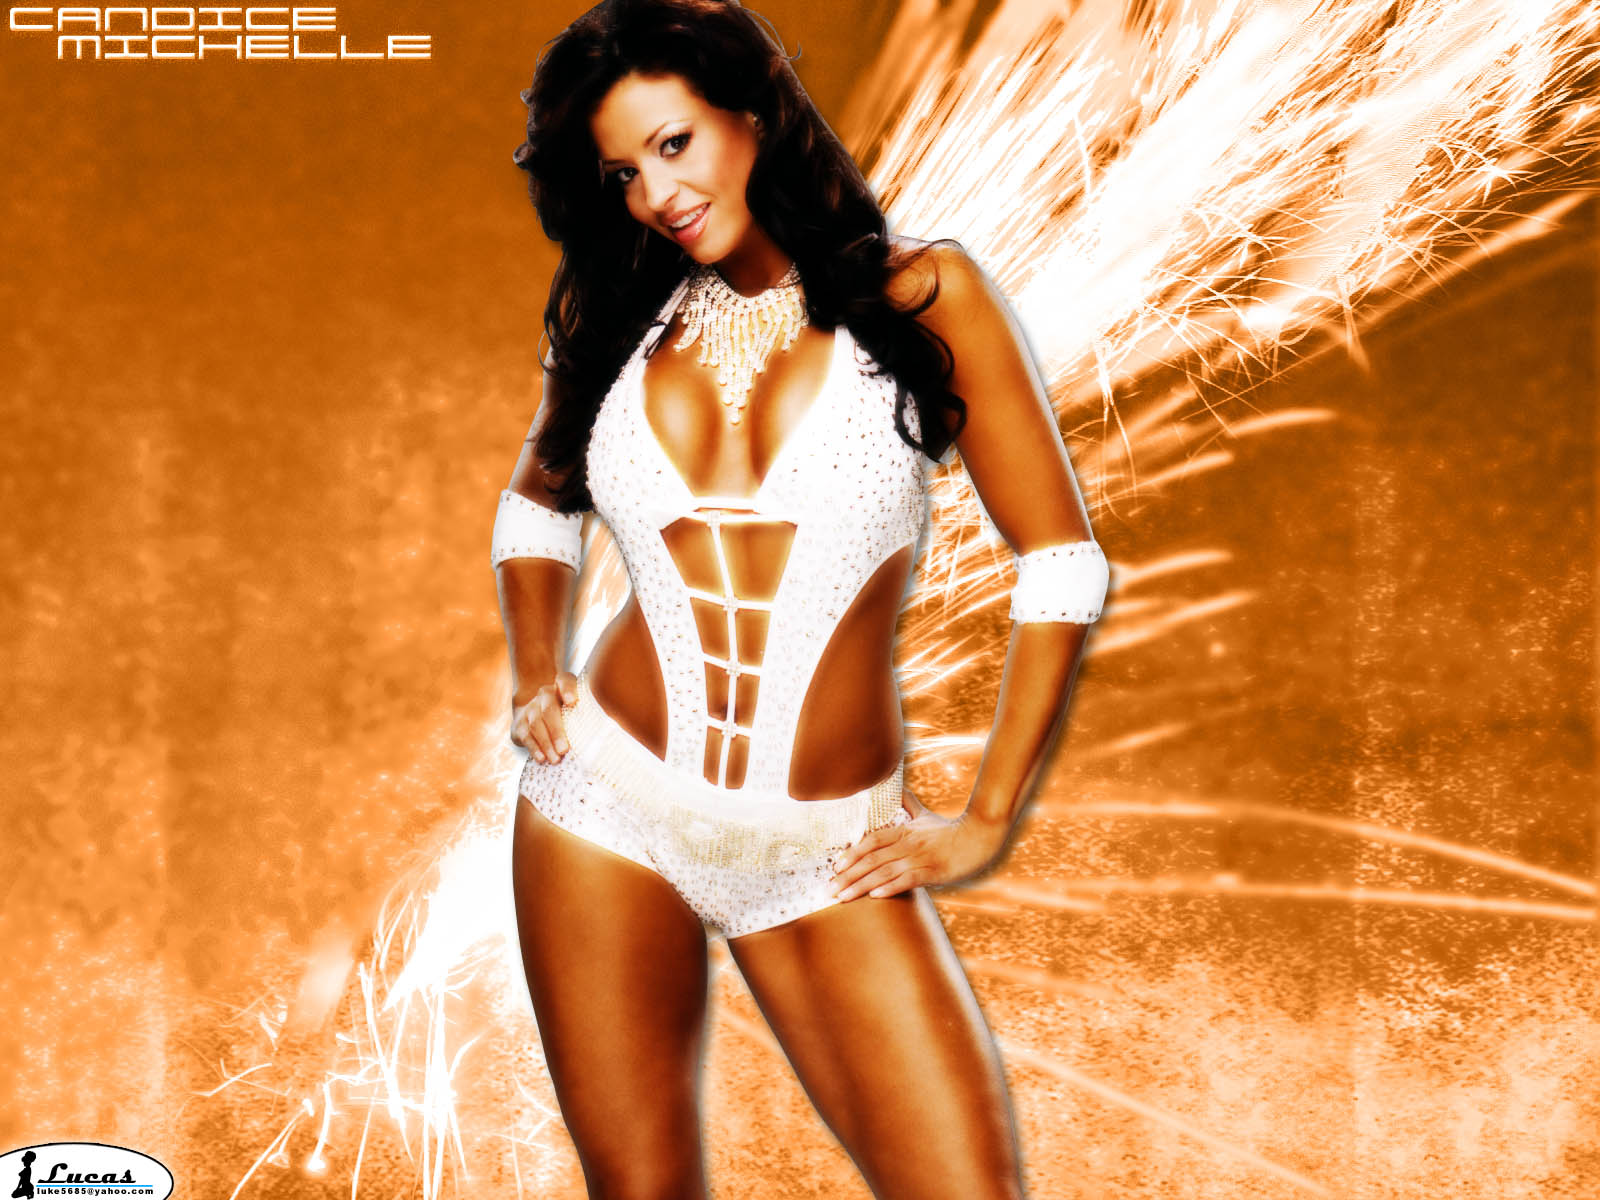 Candice Michelle - Images Actress